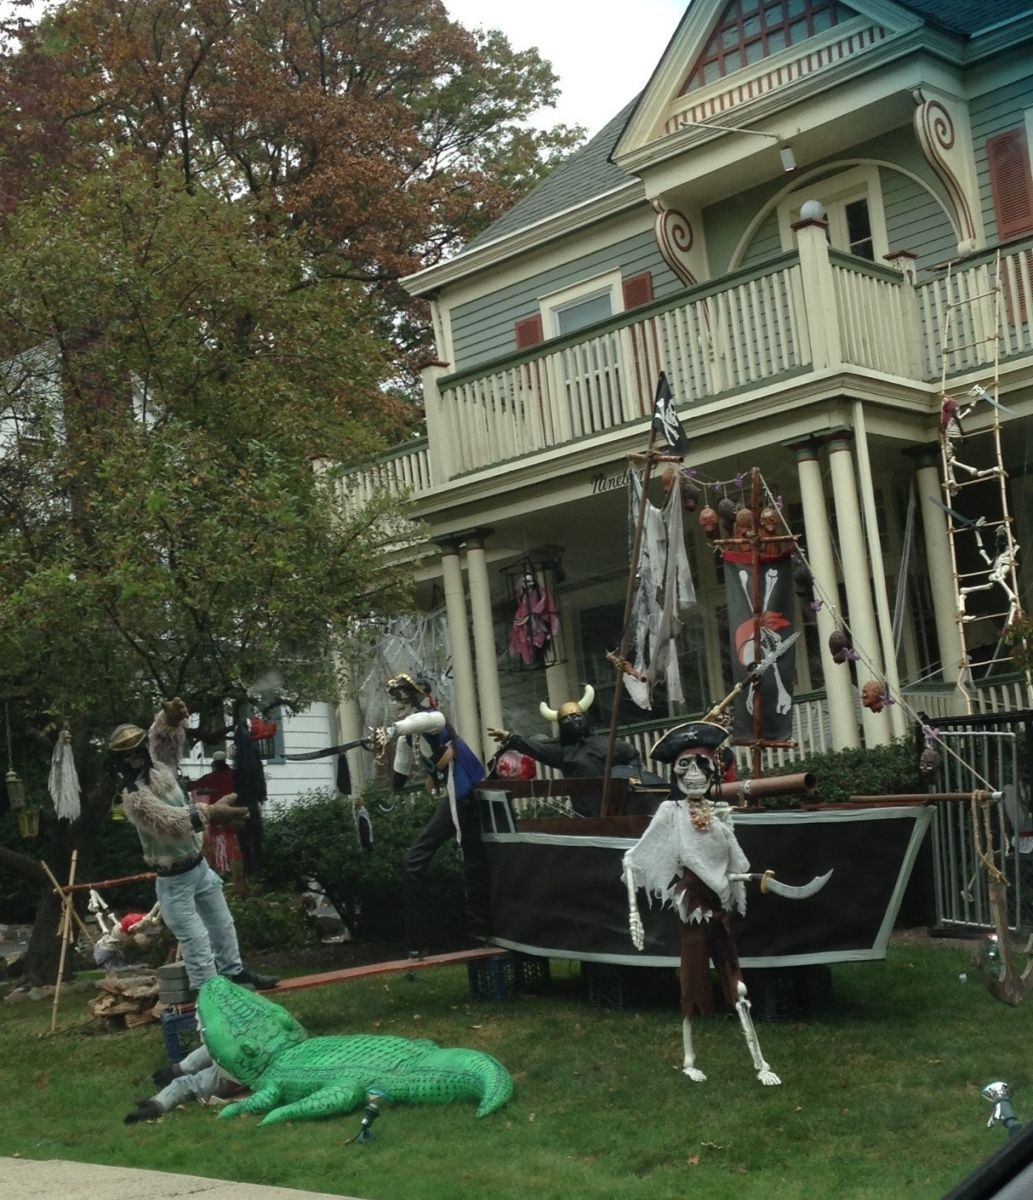 Halloween Outdoor Yard Decorations: 26 Stunning House Halloween Decorations Ideas